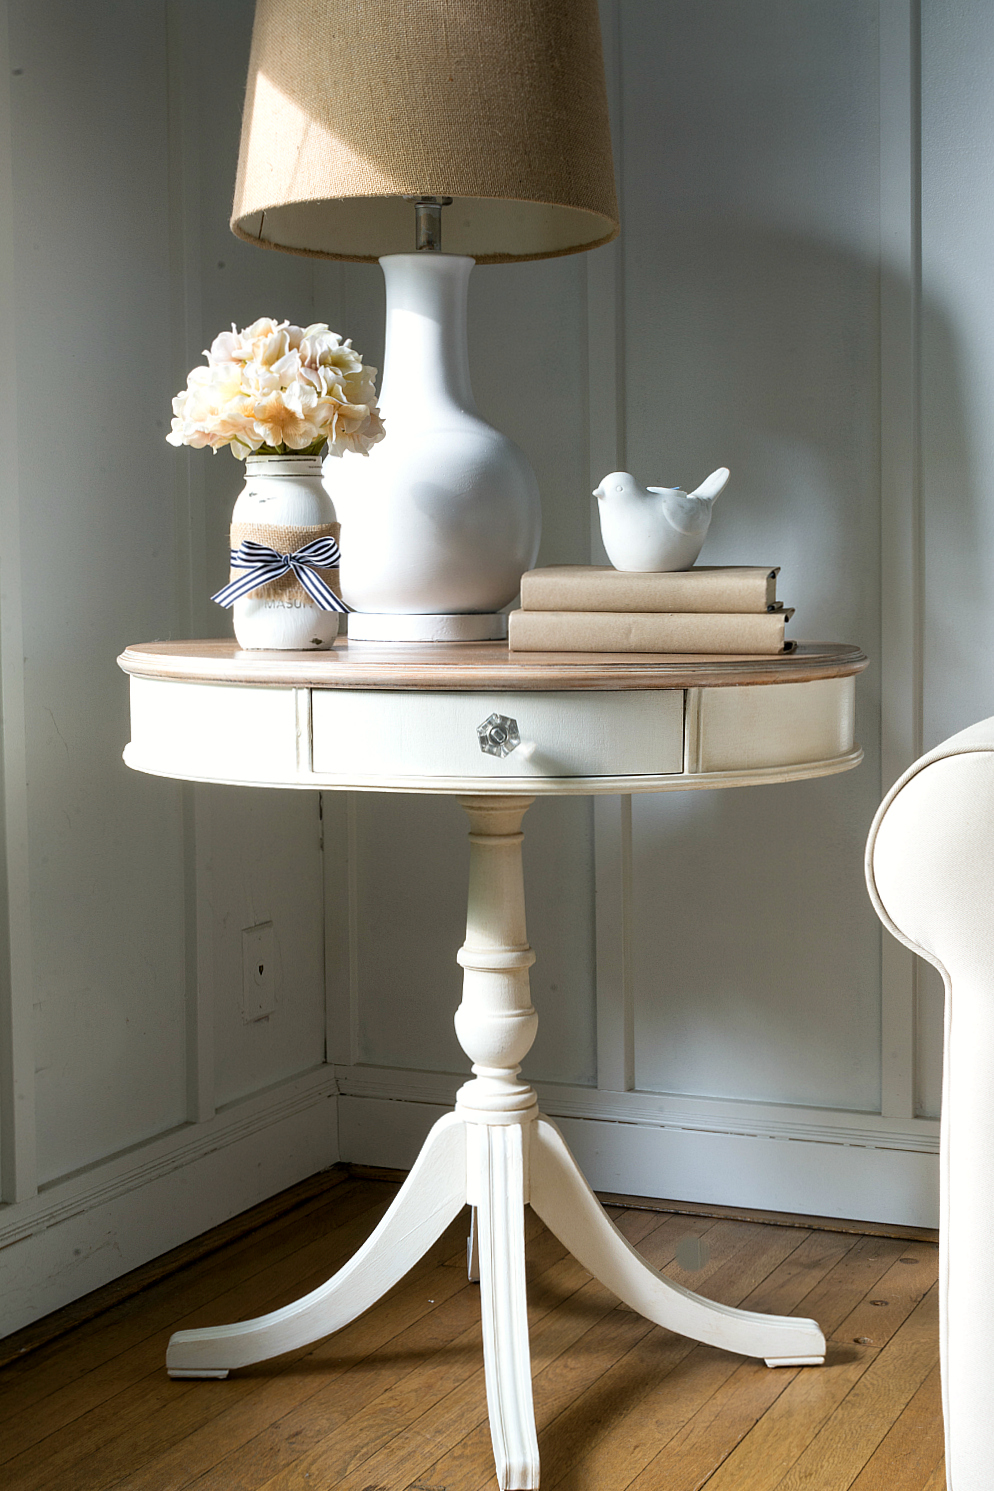 drum-table-painted-white-whitewashed-top-how-to (15 of 29) 2